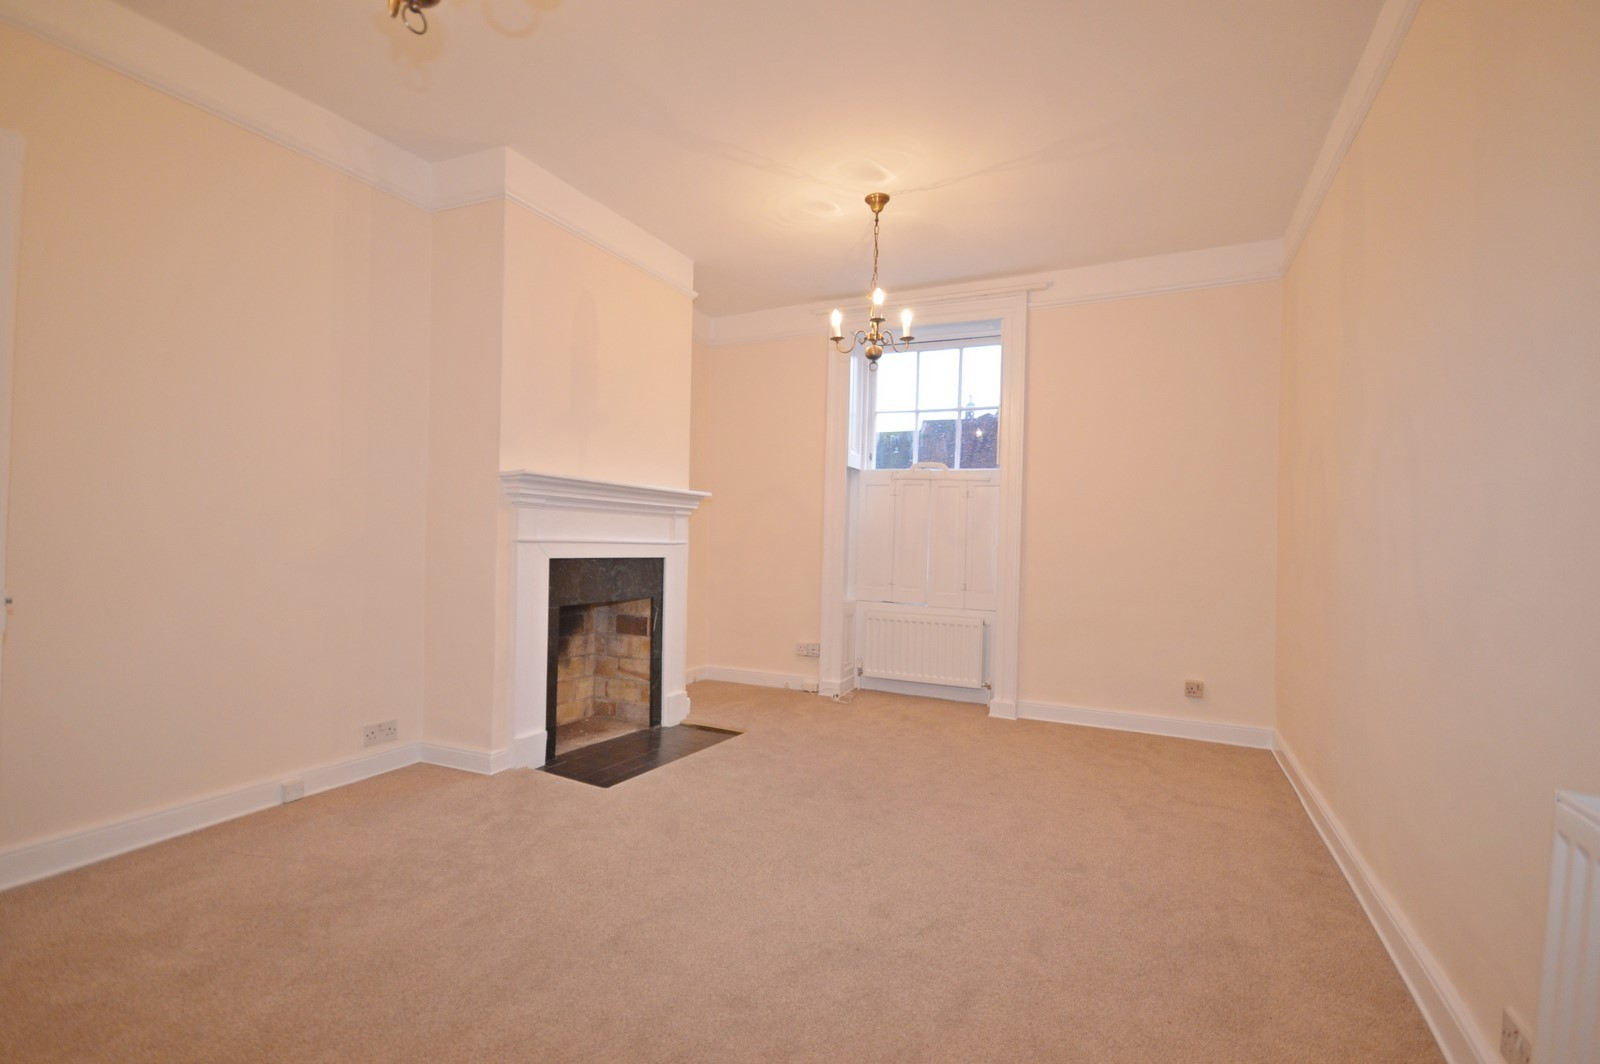 Drawing Room House to rent in Chichester City Centre